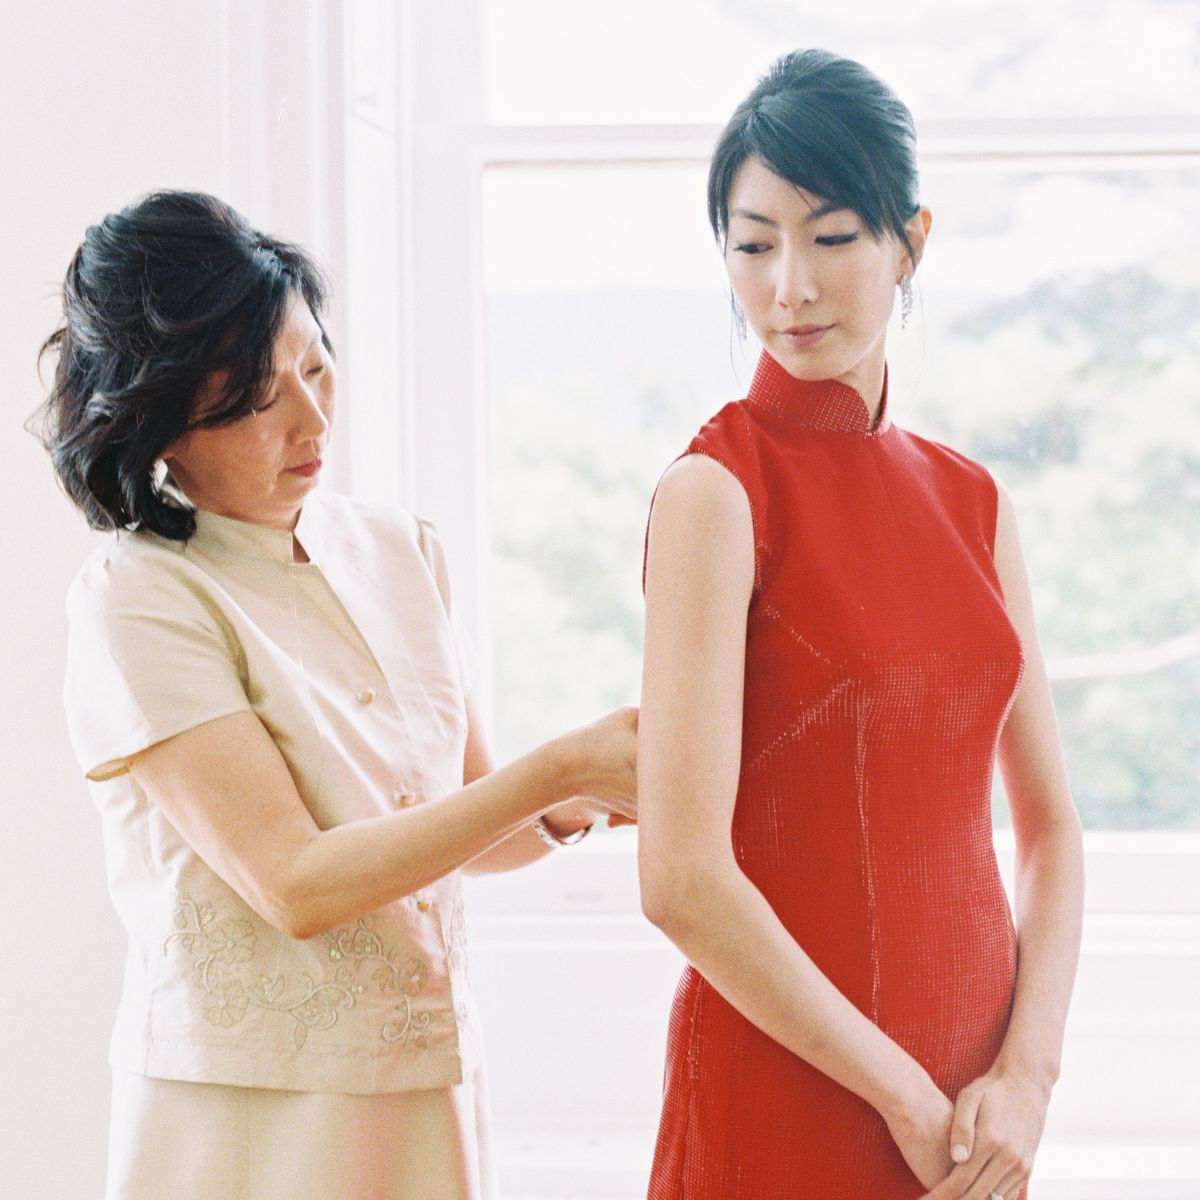 mother of the bride helping bride get dressed qipao